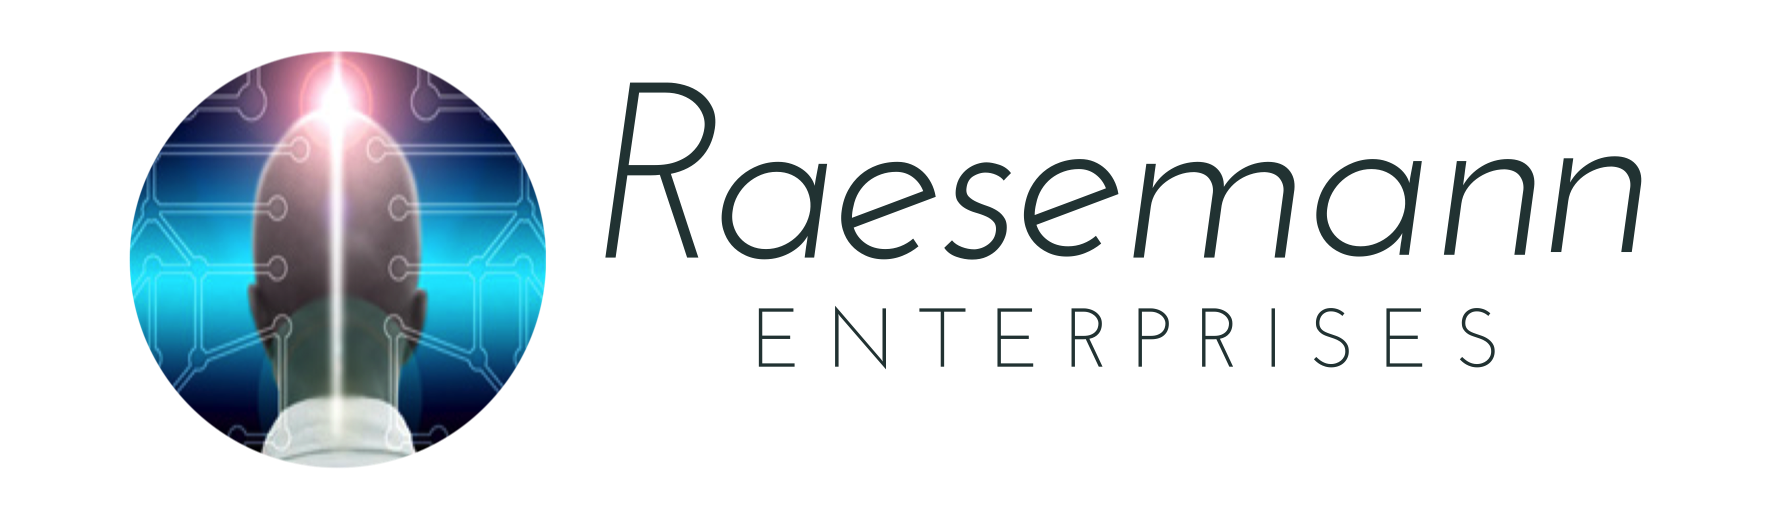 Raesemann Enterprises, Inc.